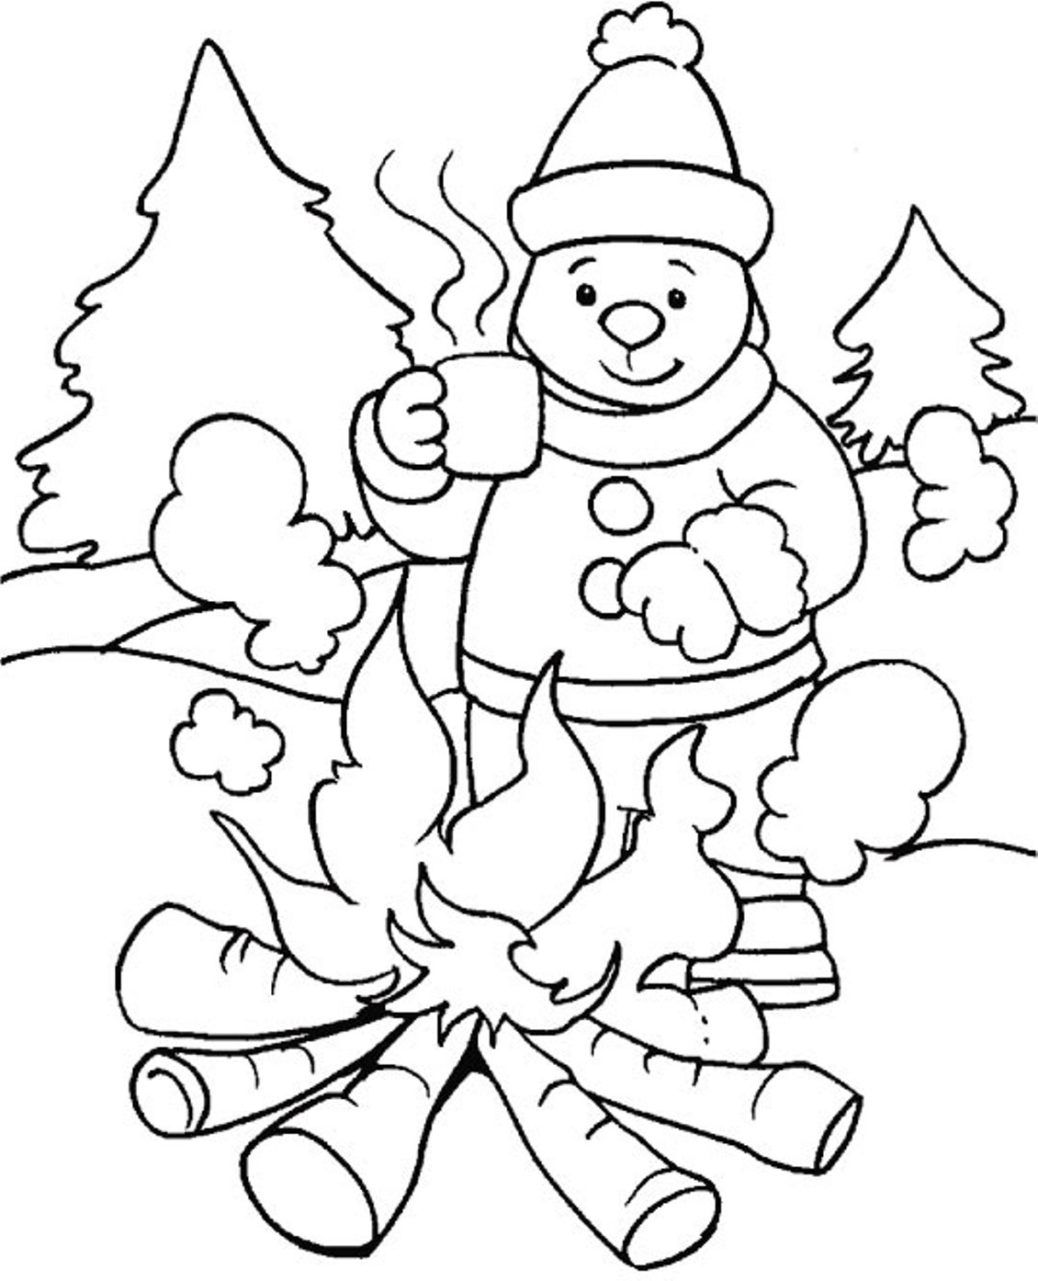 Winter Wonderland Coloring Pages - NEO Coloring